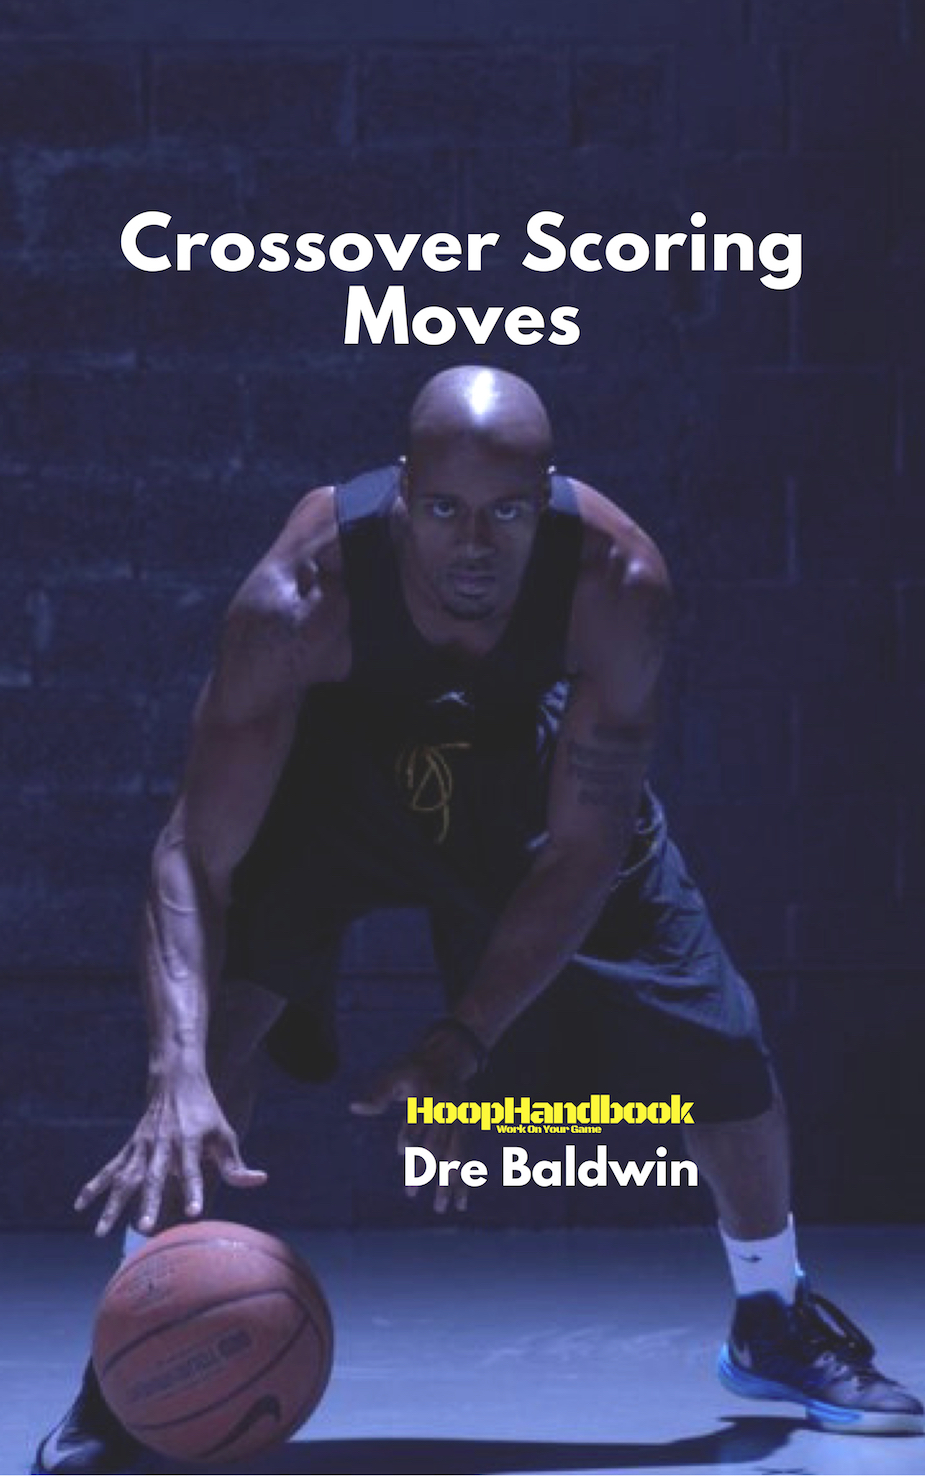 Crossover Scoring Moves by Dre Baldwin